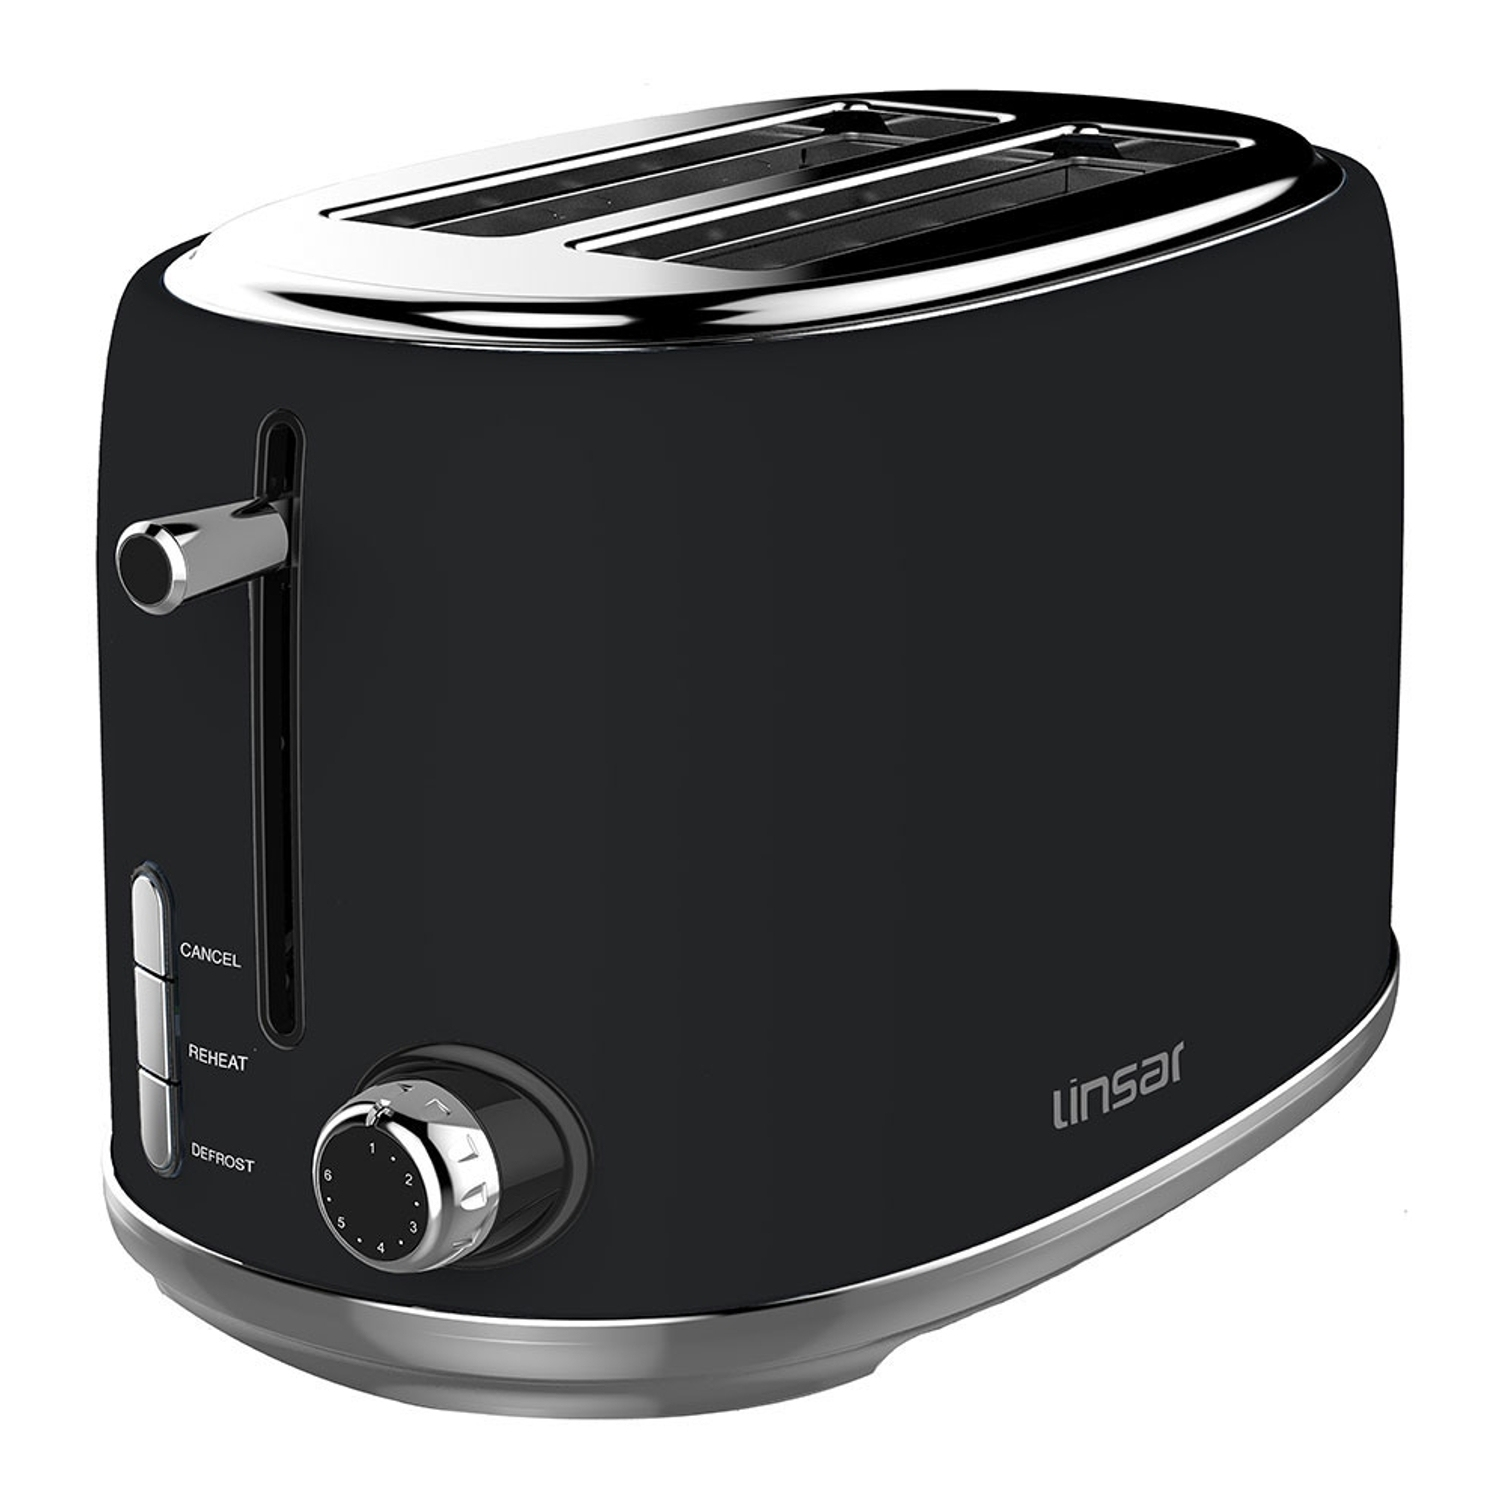 Linsar 2 Slice Toaster - Black - 0